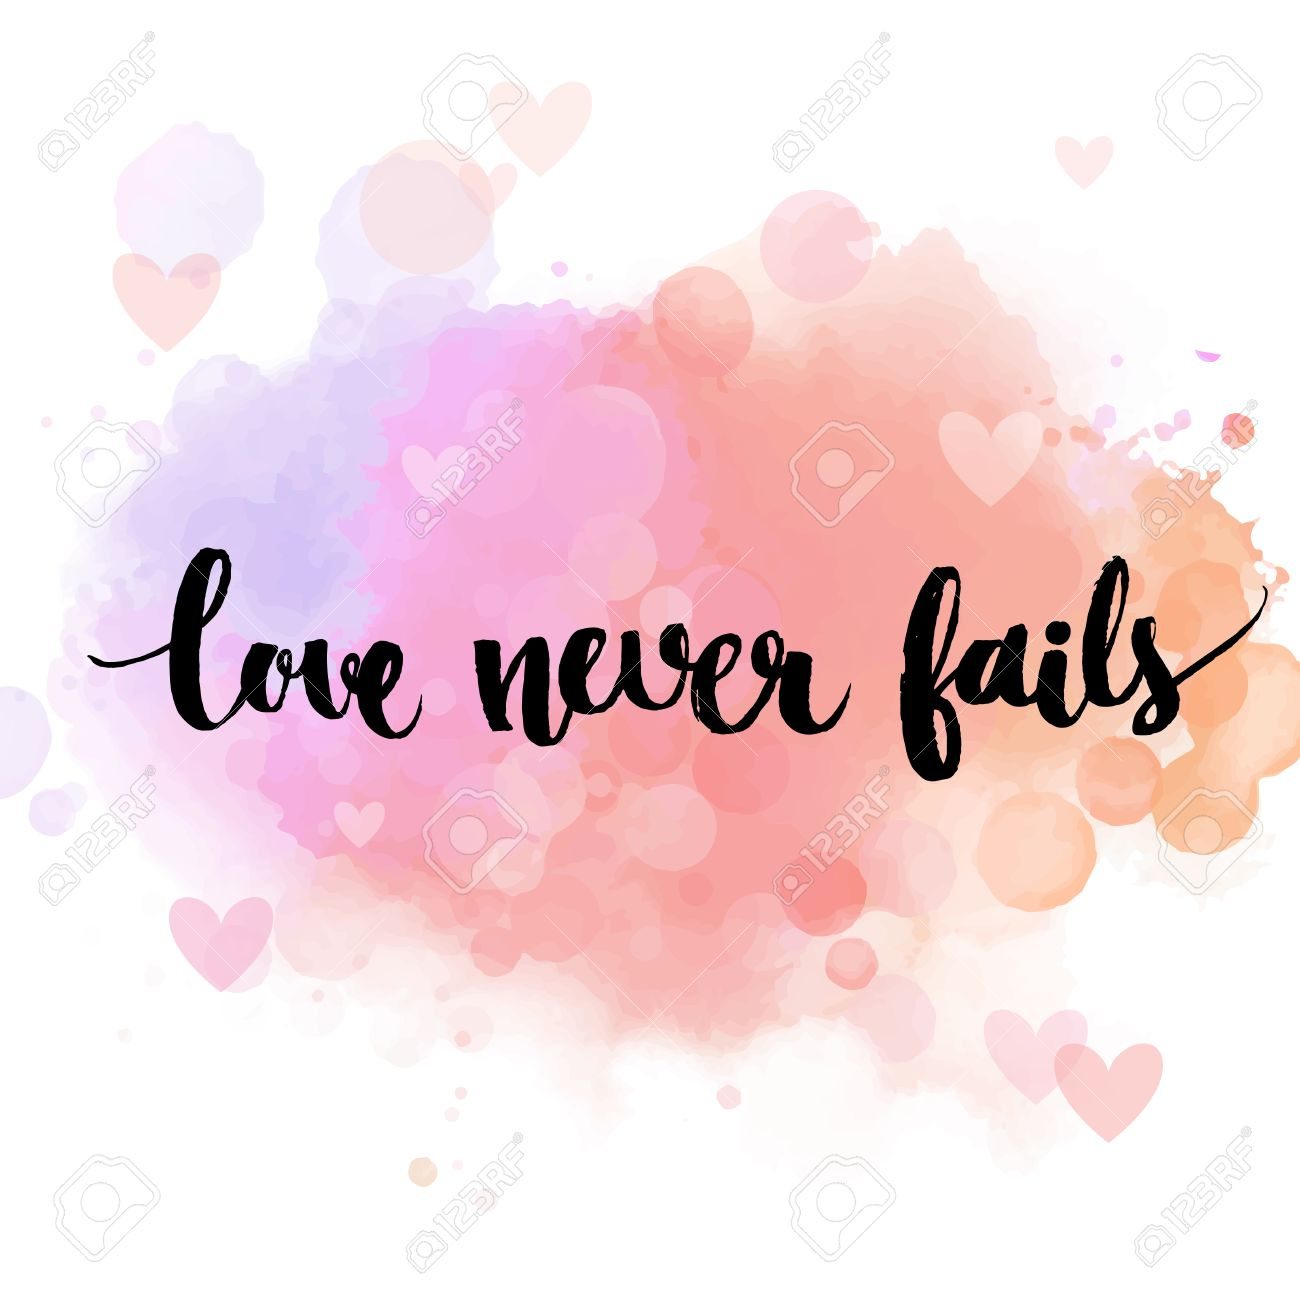 Love Never Fails. Black Inspirational Quote On Pastel Pink Background,  Brush Typography For Poster